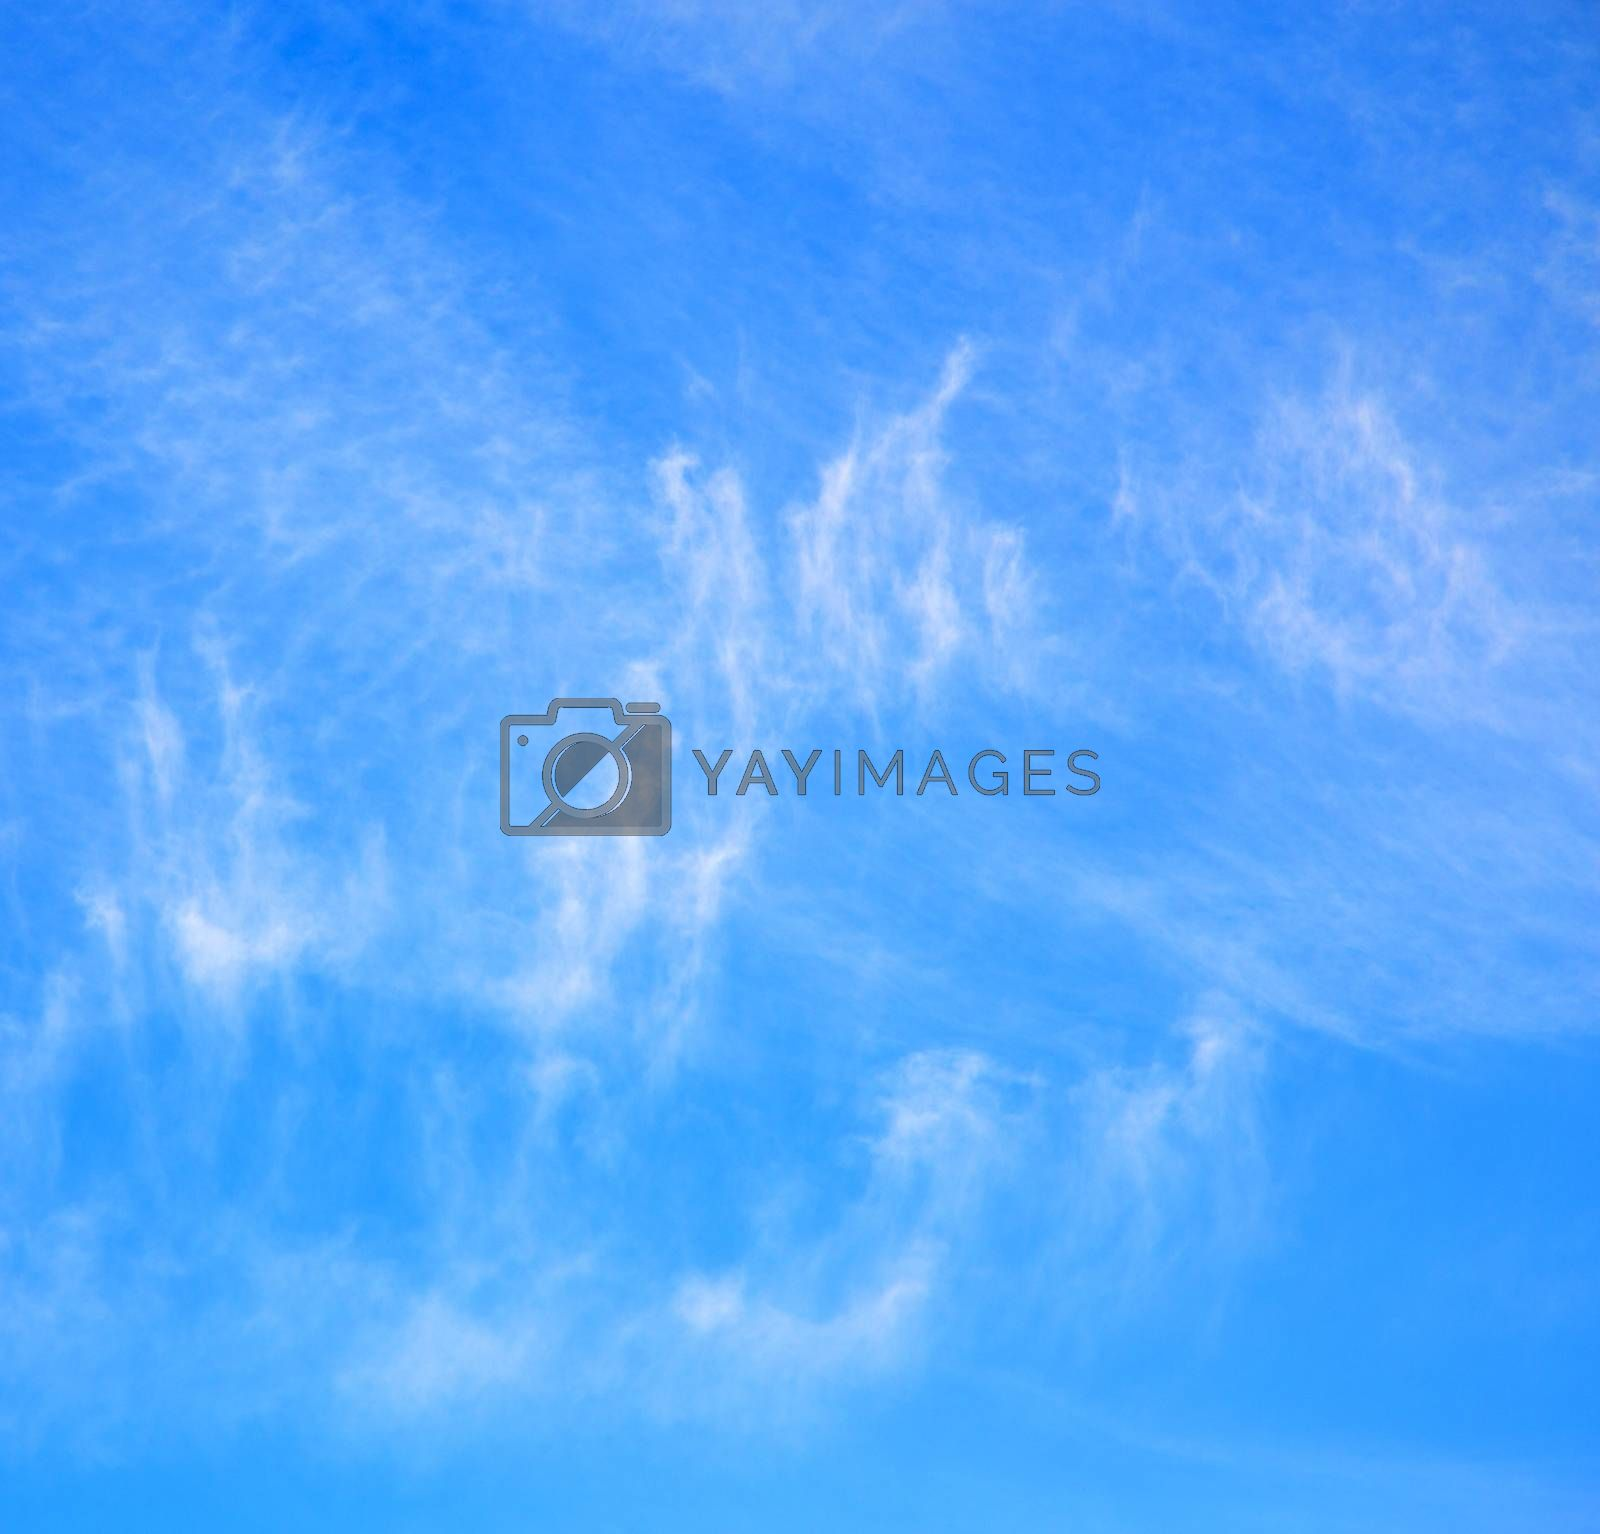 in the blue sky white soft clouds and abstract background by lkpro